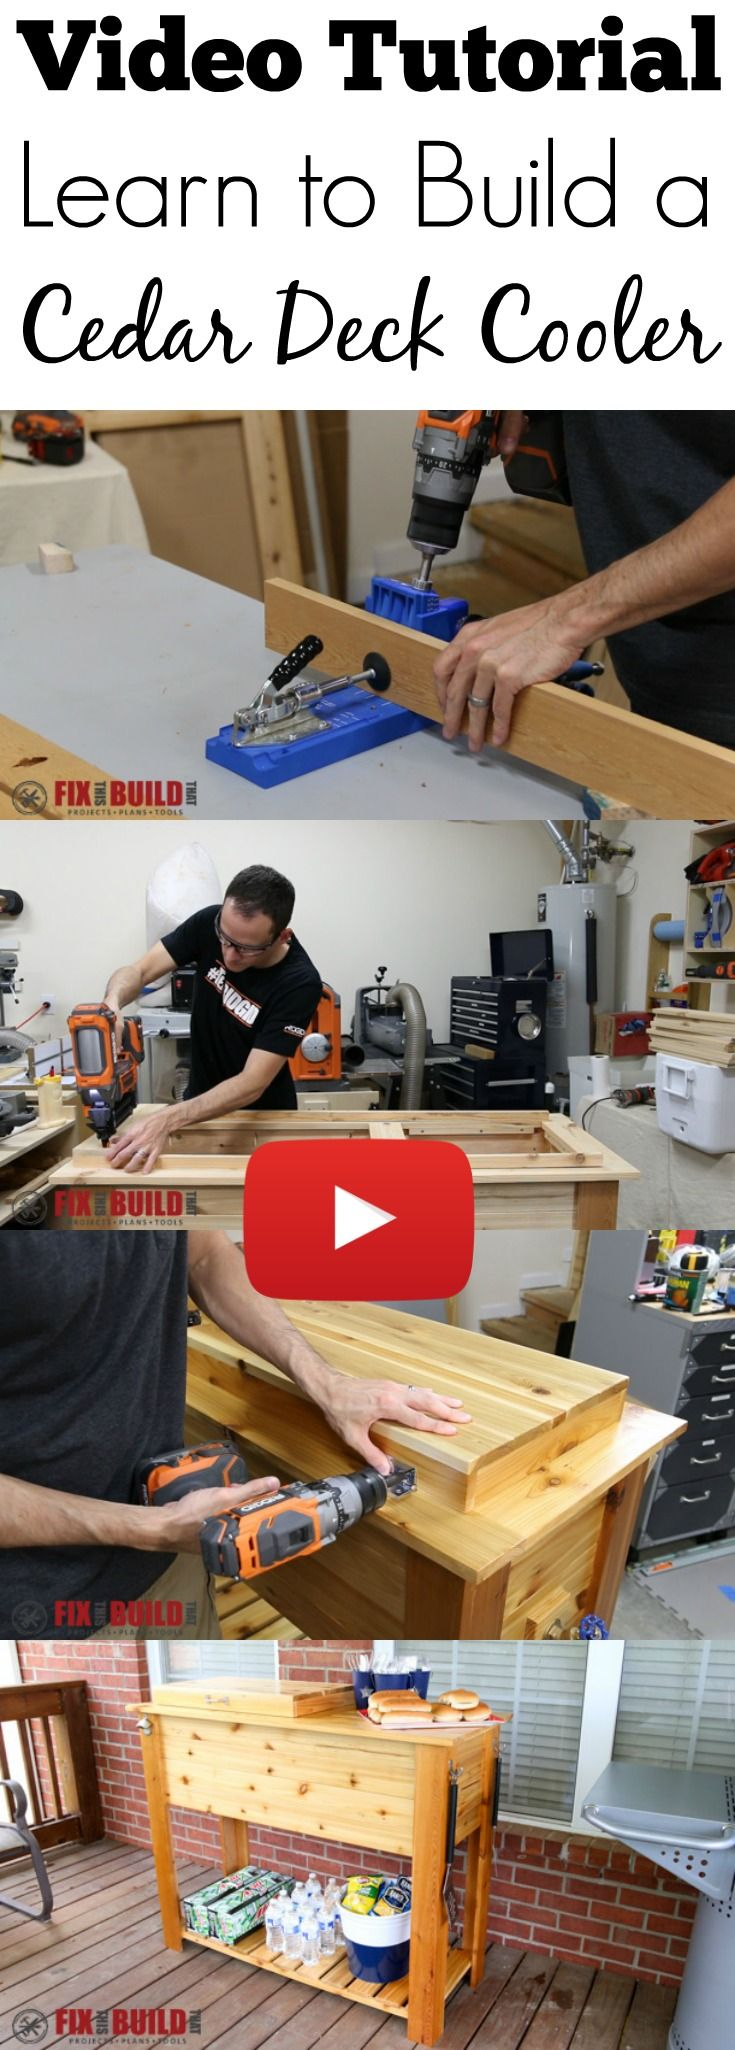 Full video build tutorial on how to build a Cedar Deck Cooler.  This ice box will look great on your patio and even has space for your grill cart storage items.